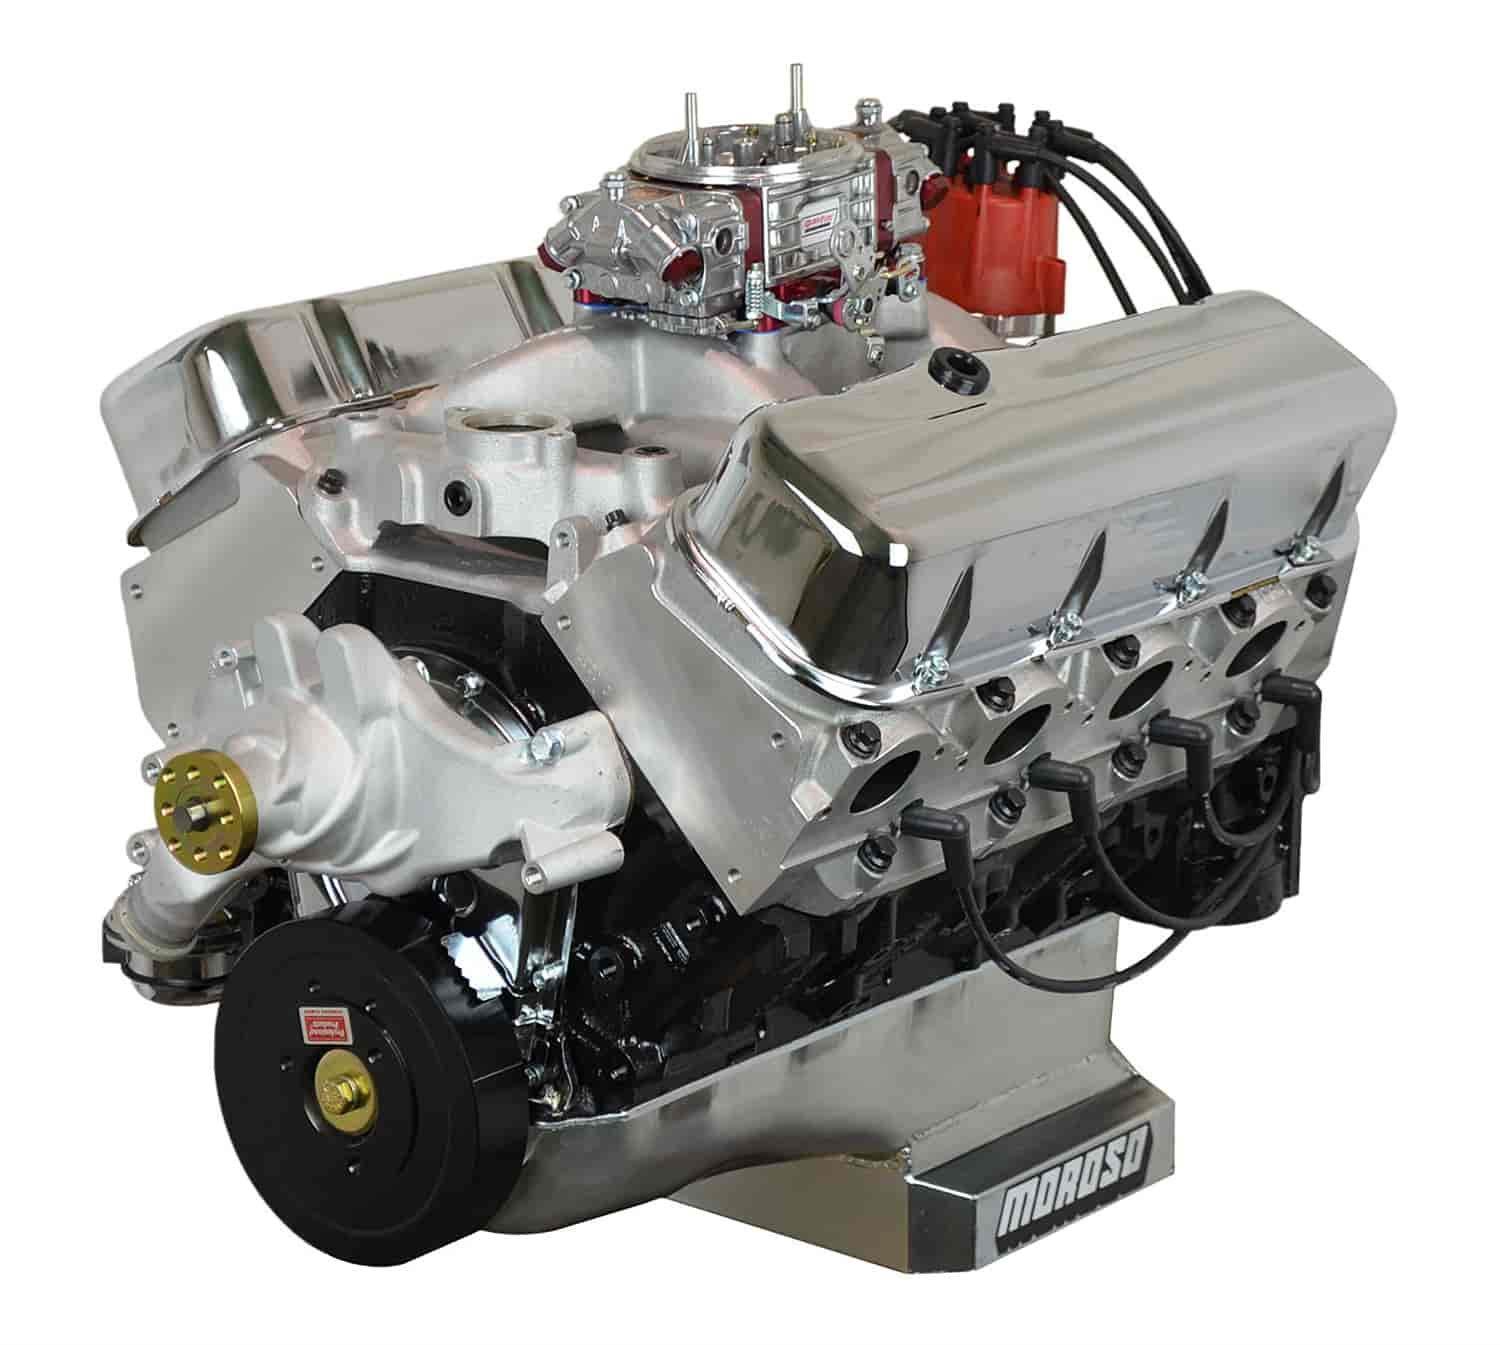 atk engines hp42c high performance crate engine big block chevy 540ci 660hp 650tq jegs. Black Bedroom Furniture Sets. Home Design Ideas